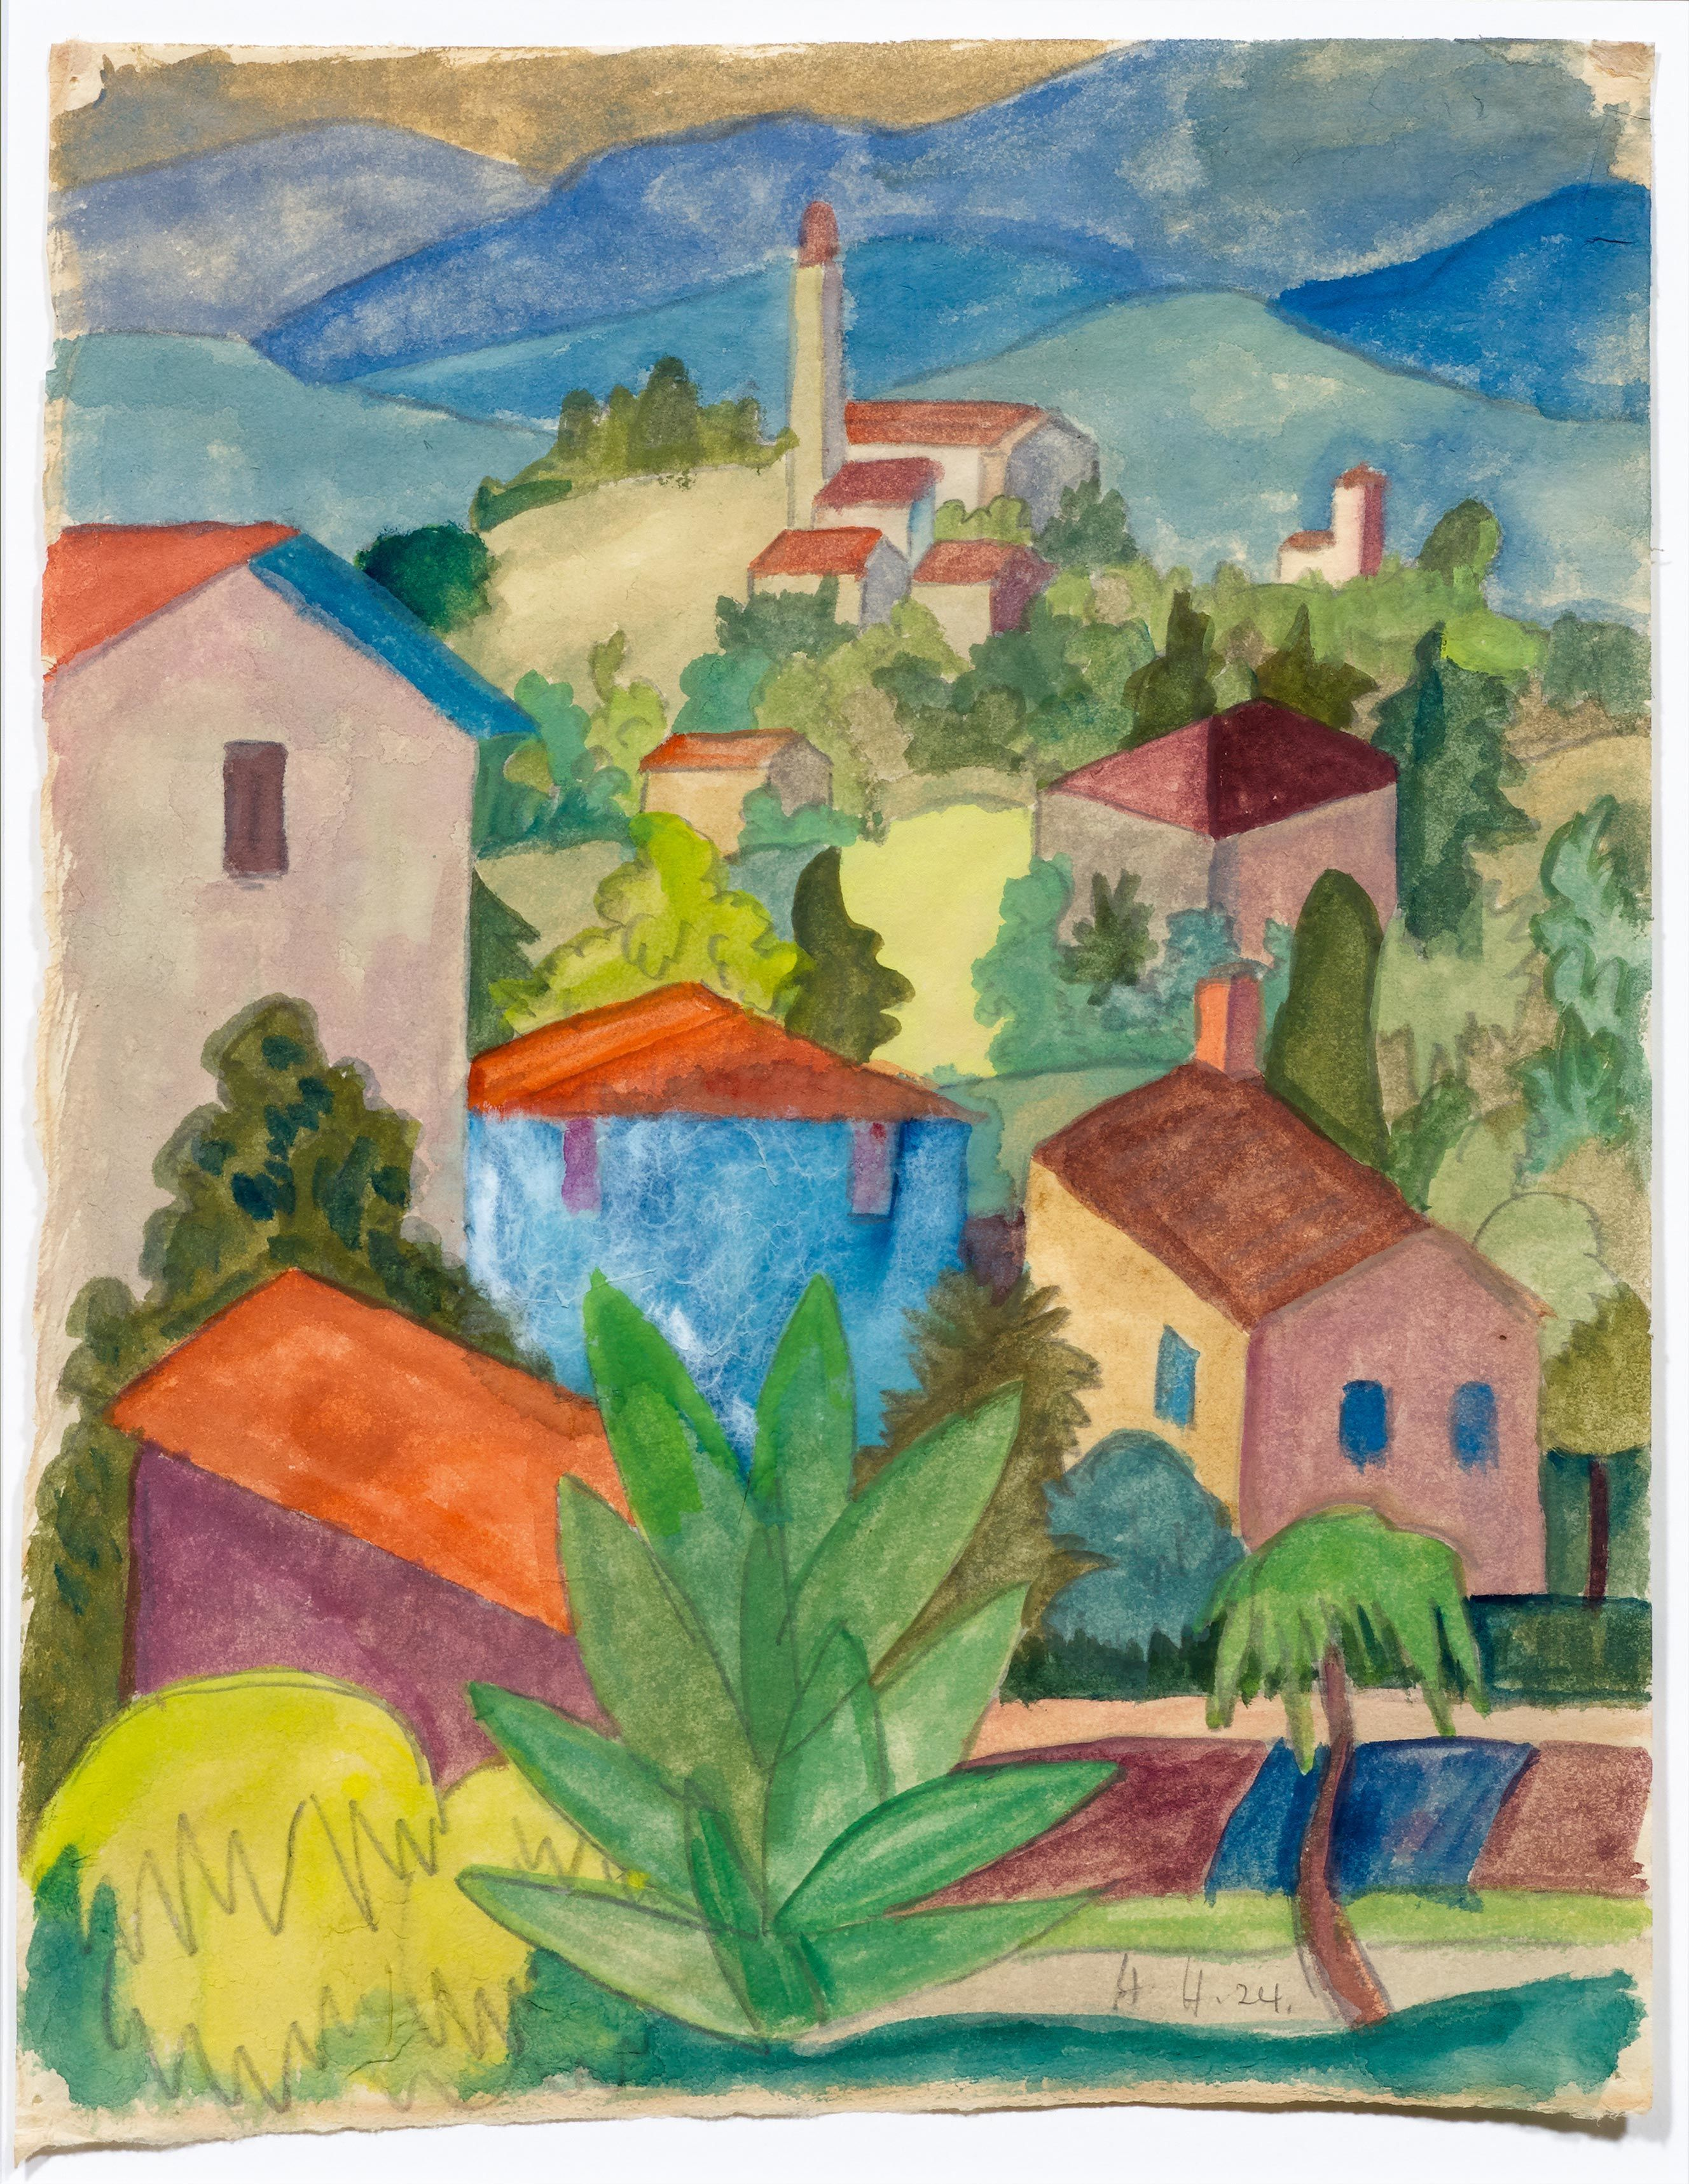 Cortivallo Aquarell 22 09 1926 Watercolor Paintings Collage